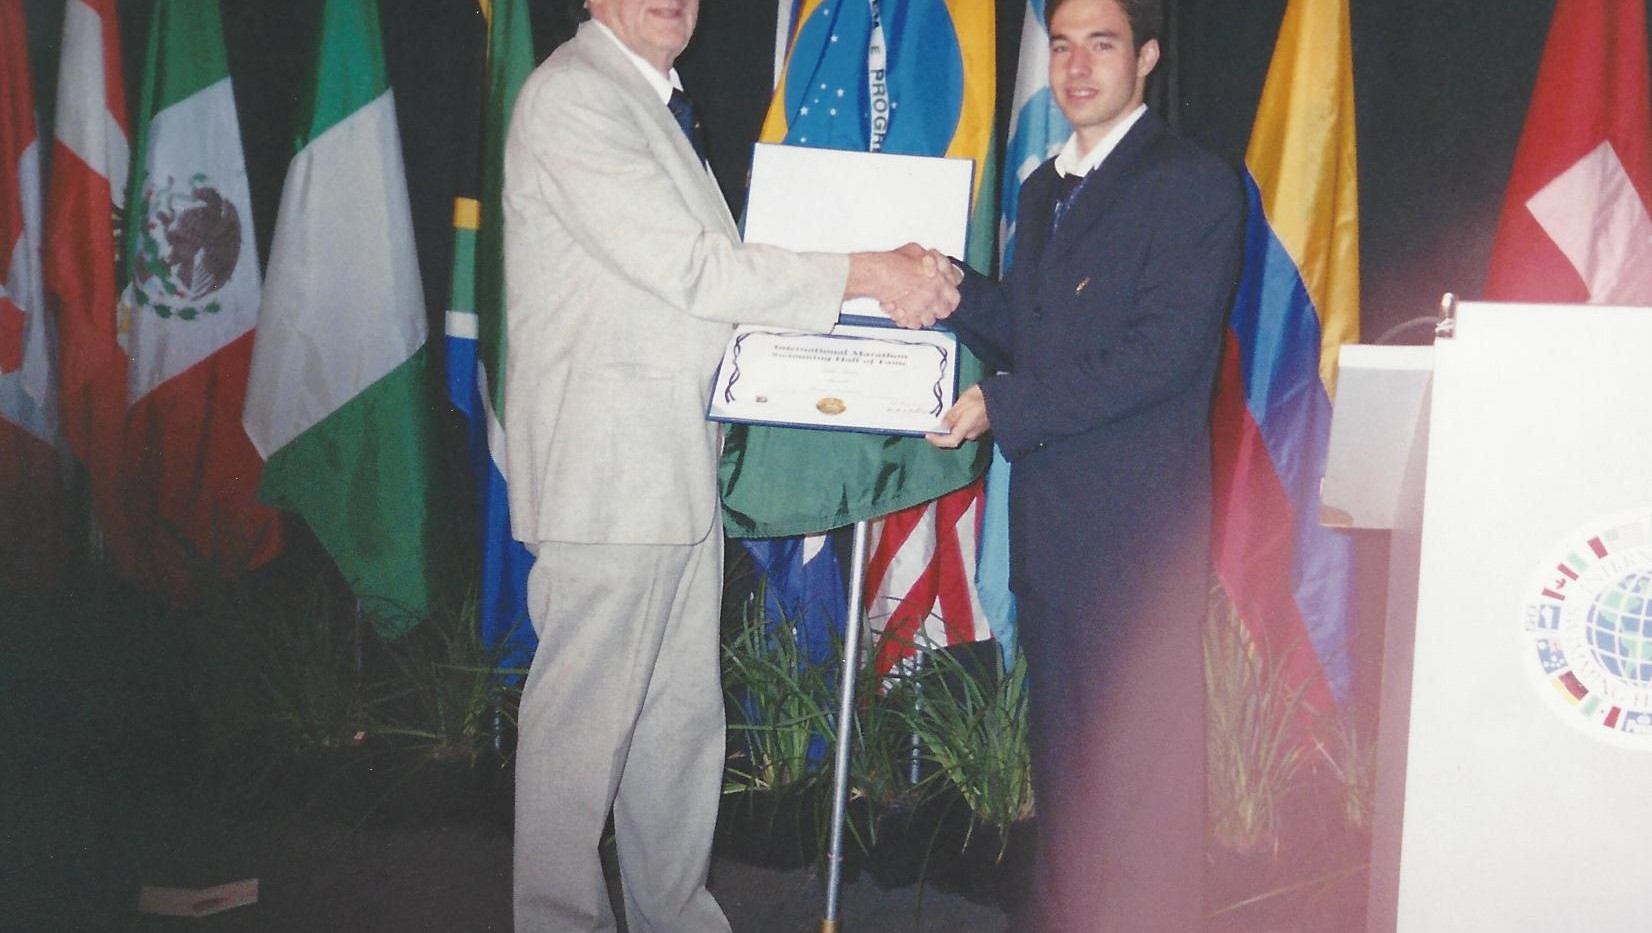 Dale Petranech and Daniel Couto.jpg